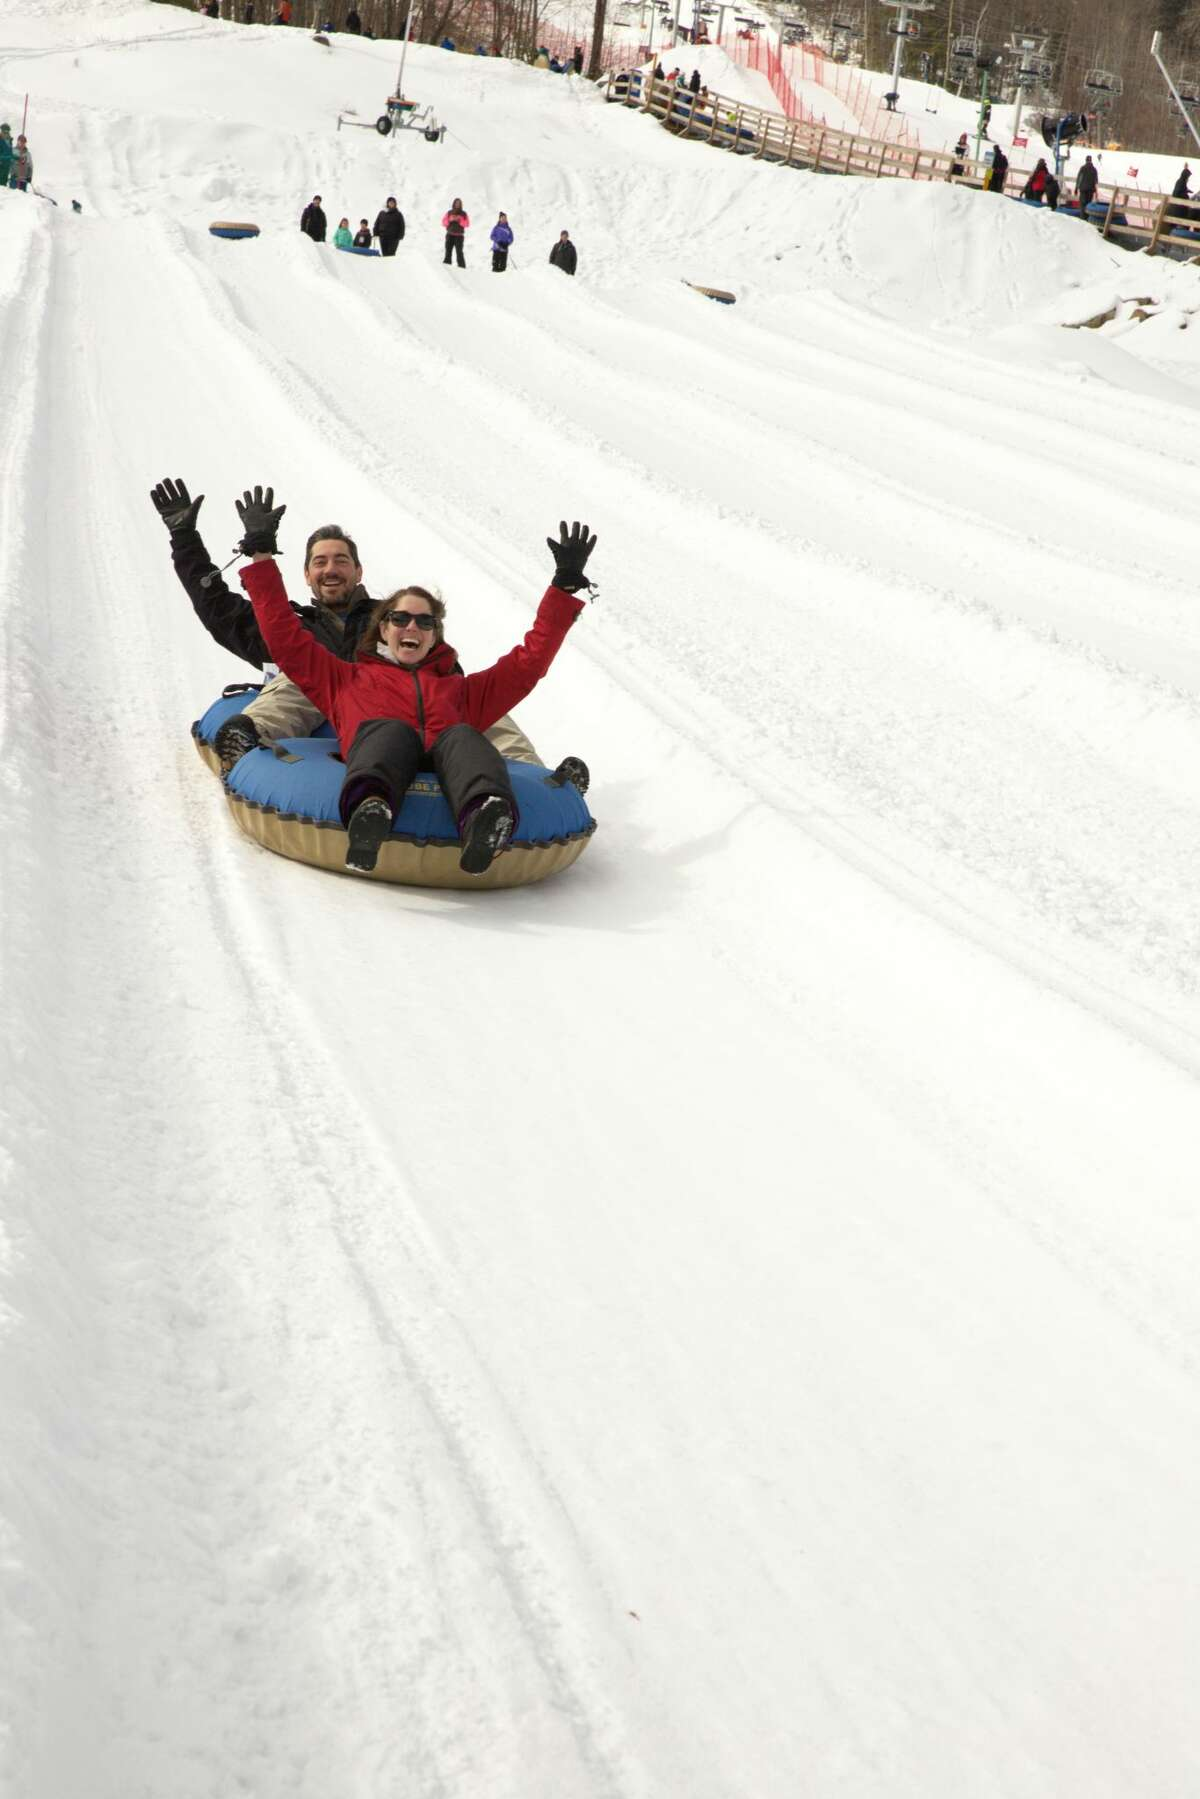 Go tubing at West Mountain in Queensbury, NY.